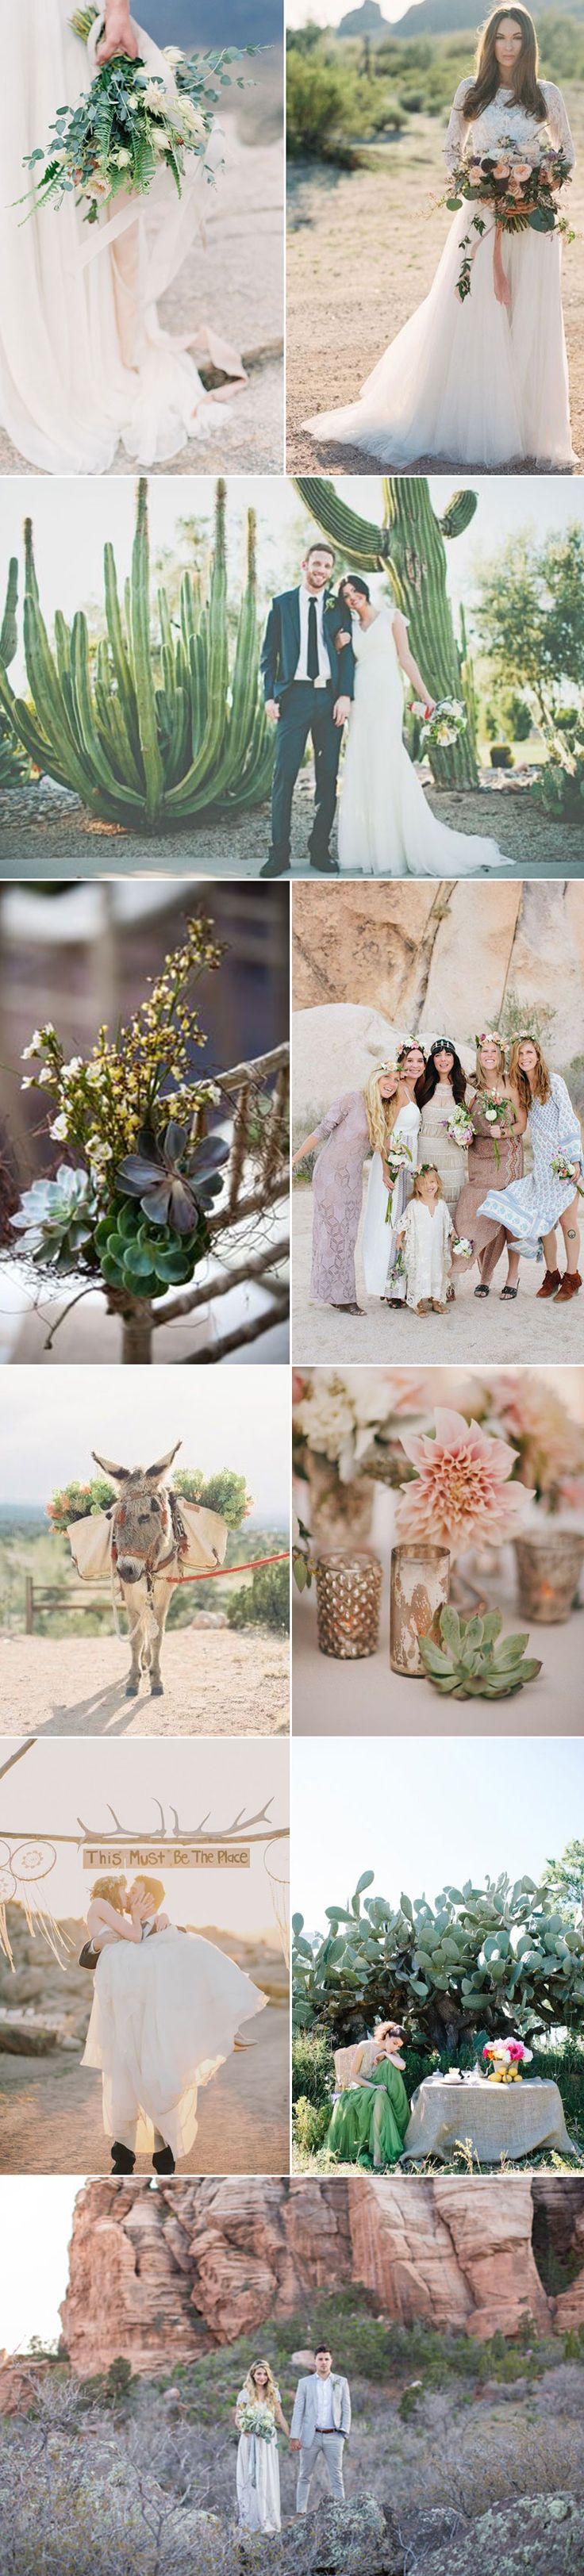 Chic dessert wedding inspiration! How cute are all of these ideas?!